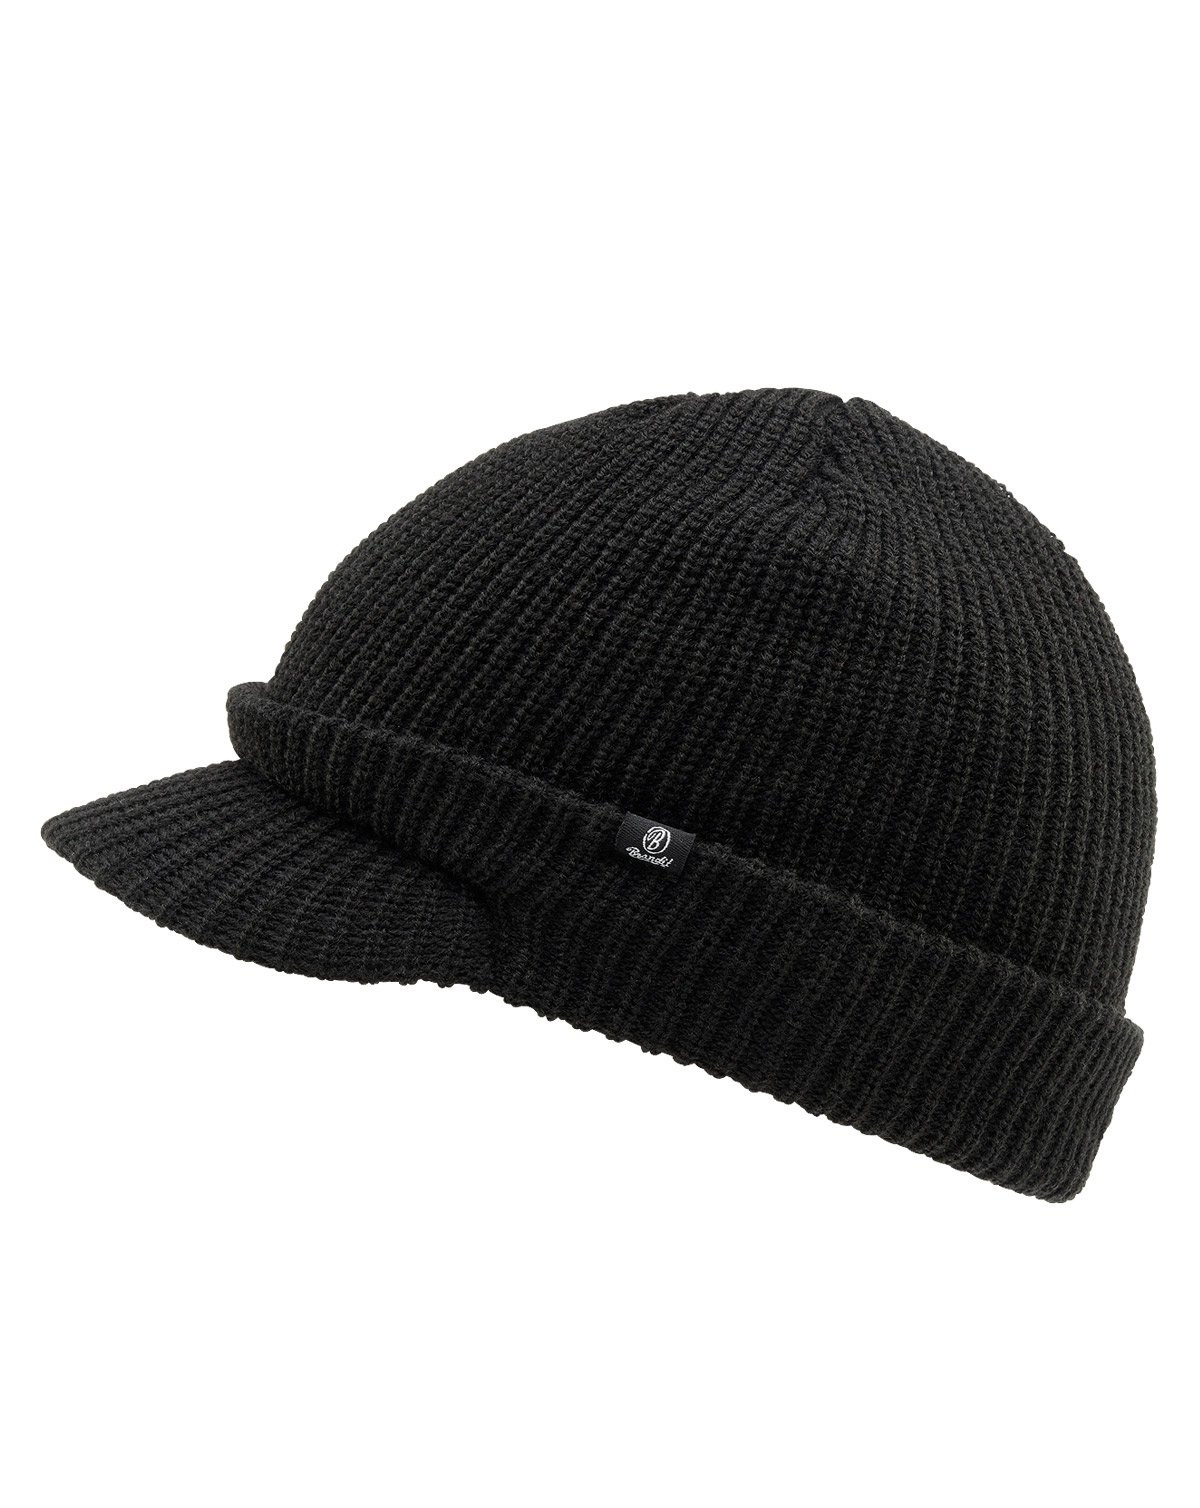 Image of   Brandit US Jeep Cap (Sort, One Size)